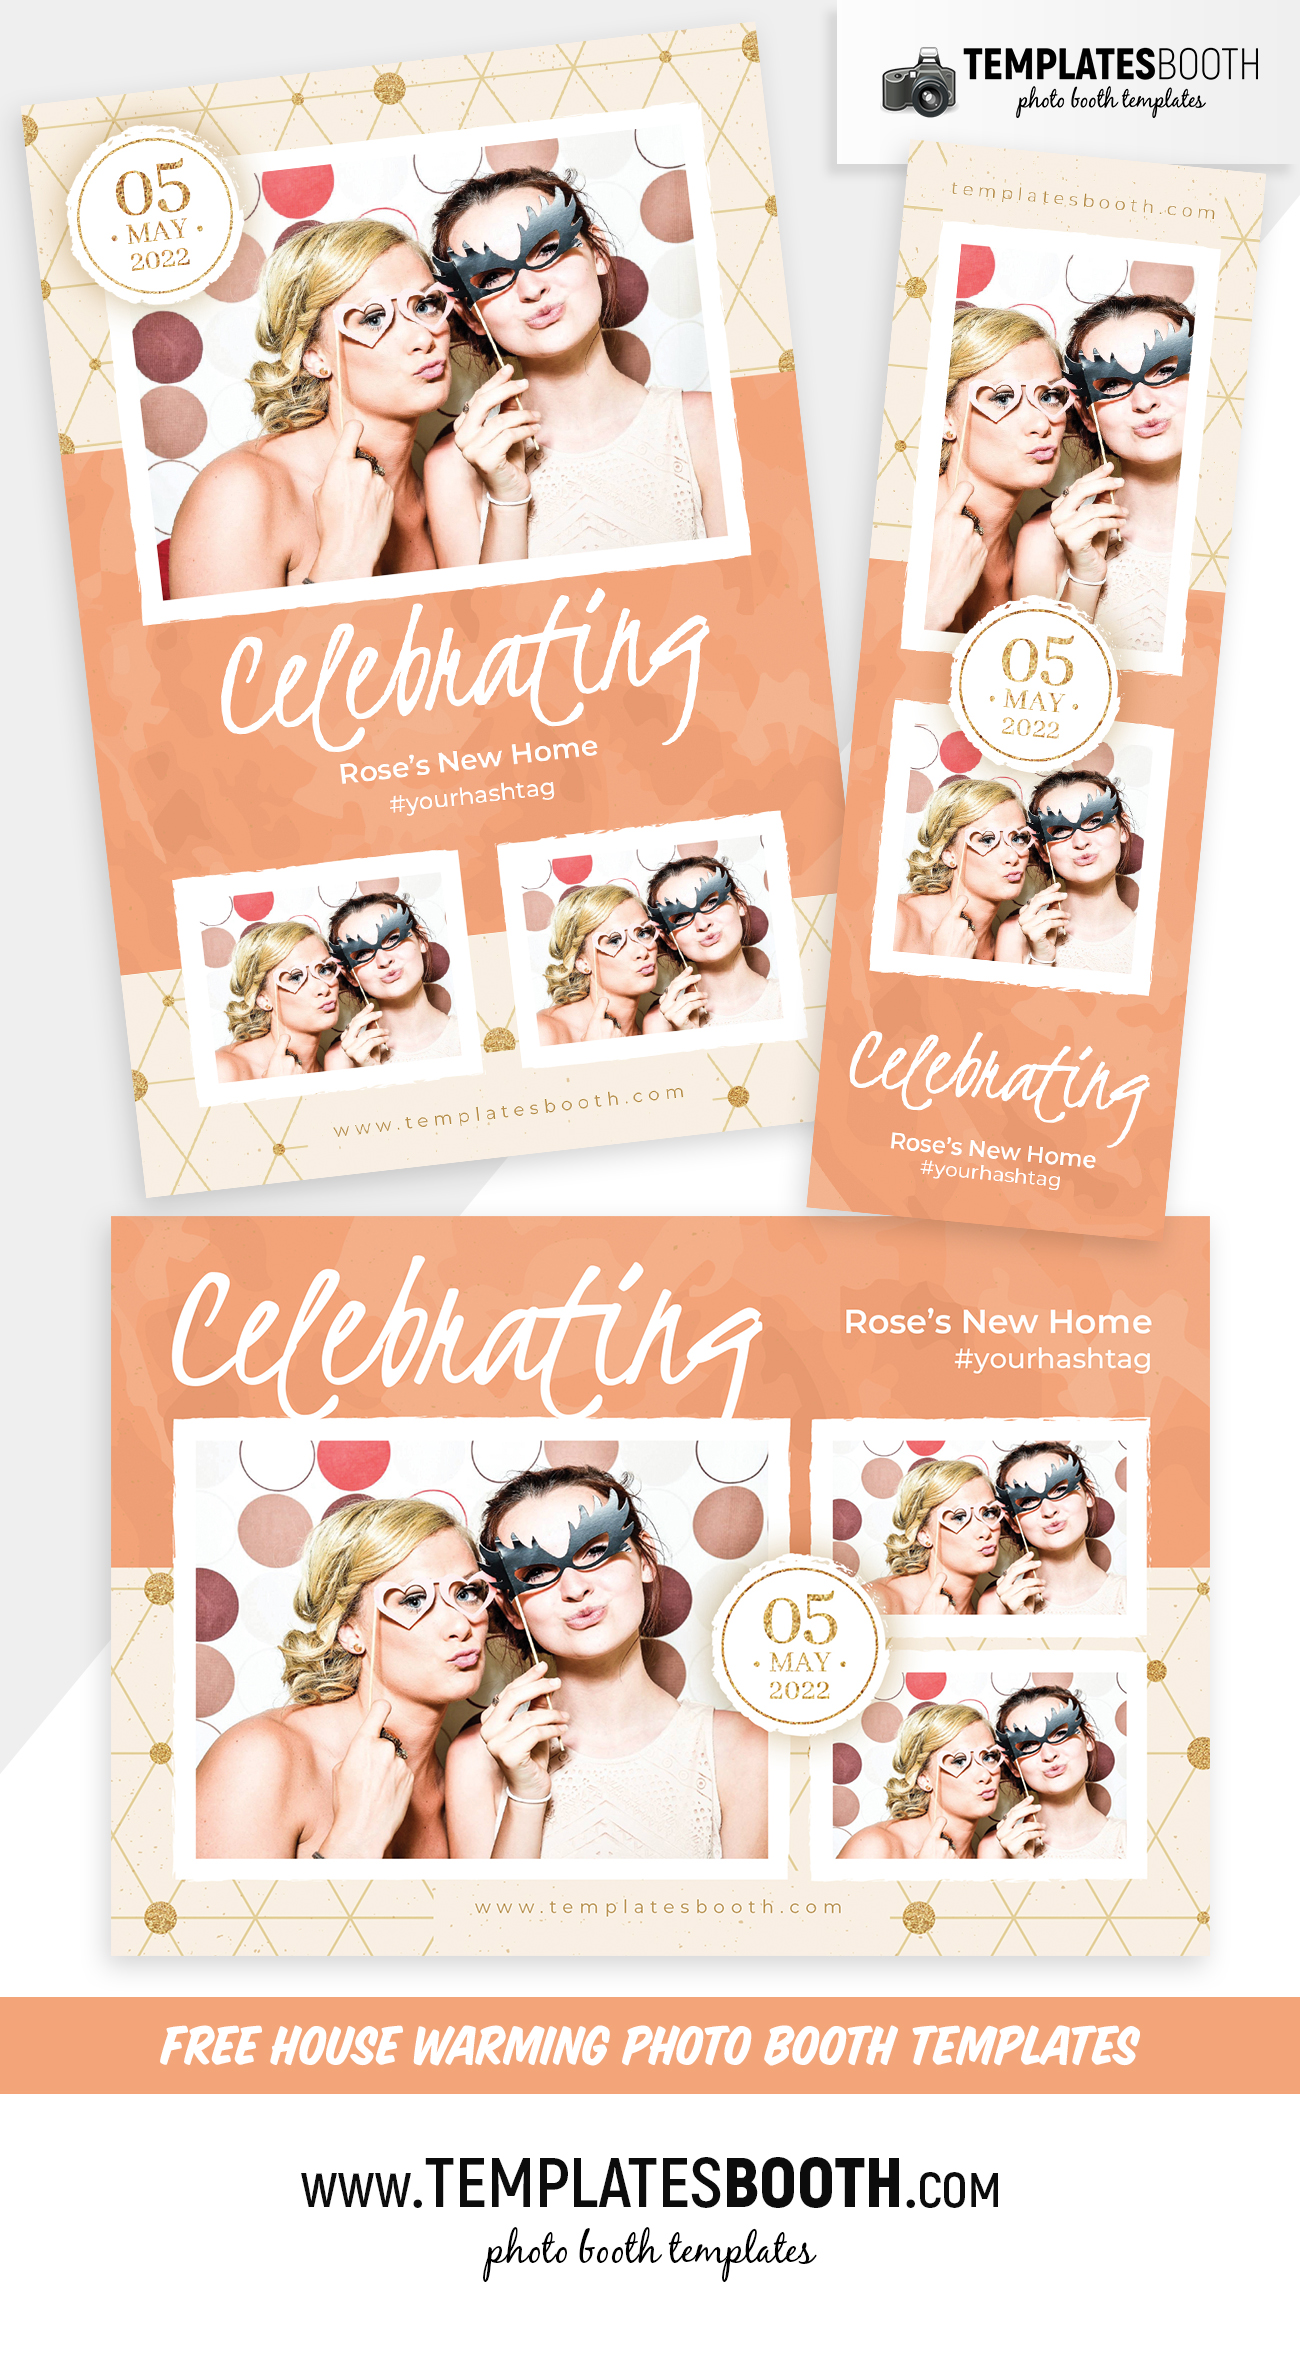 Free House Warming Photo Booth Template